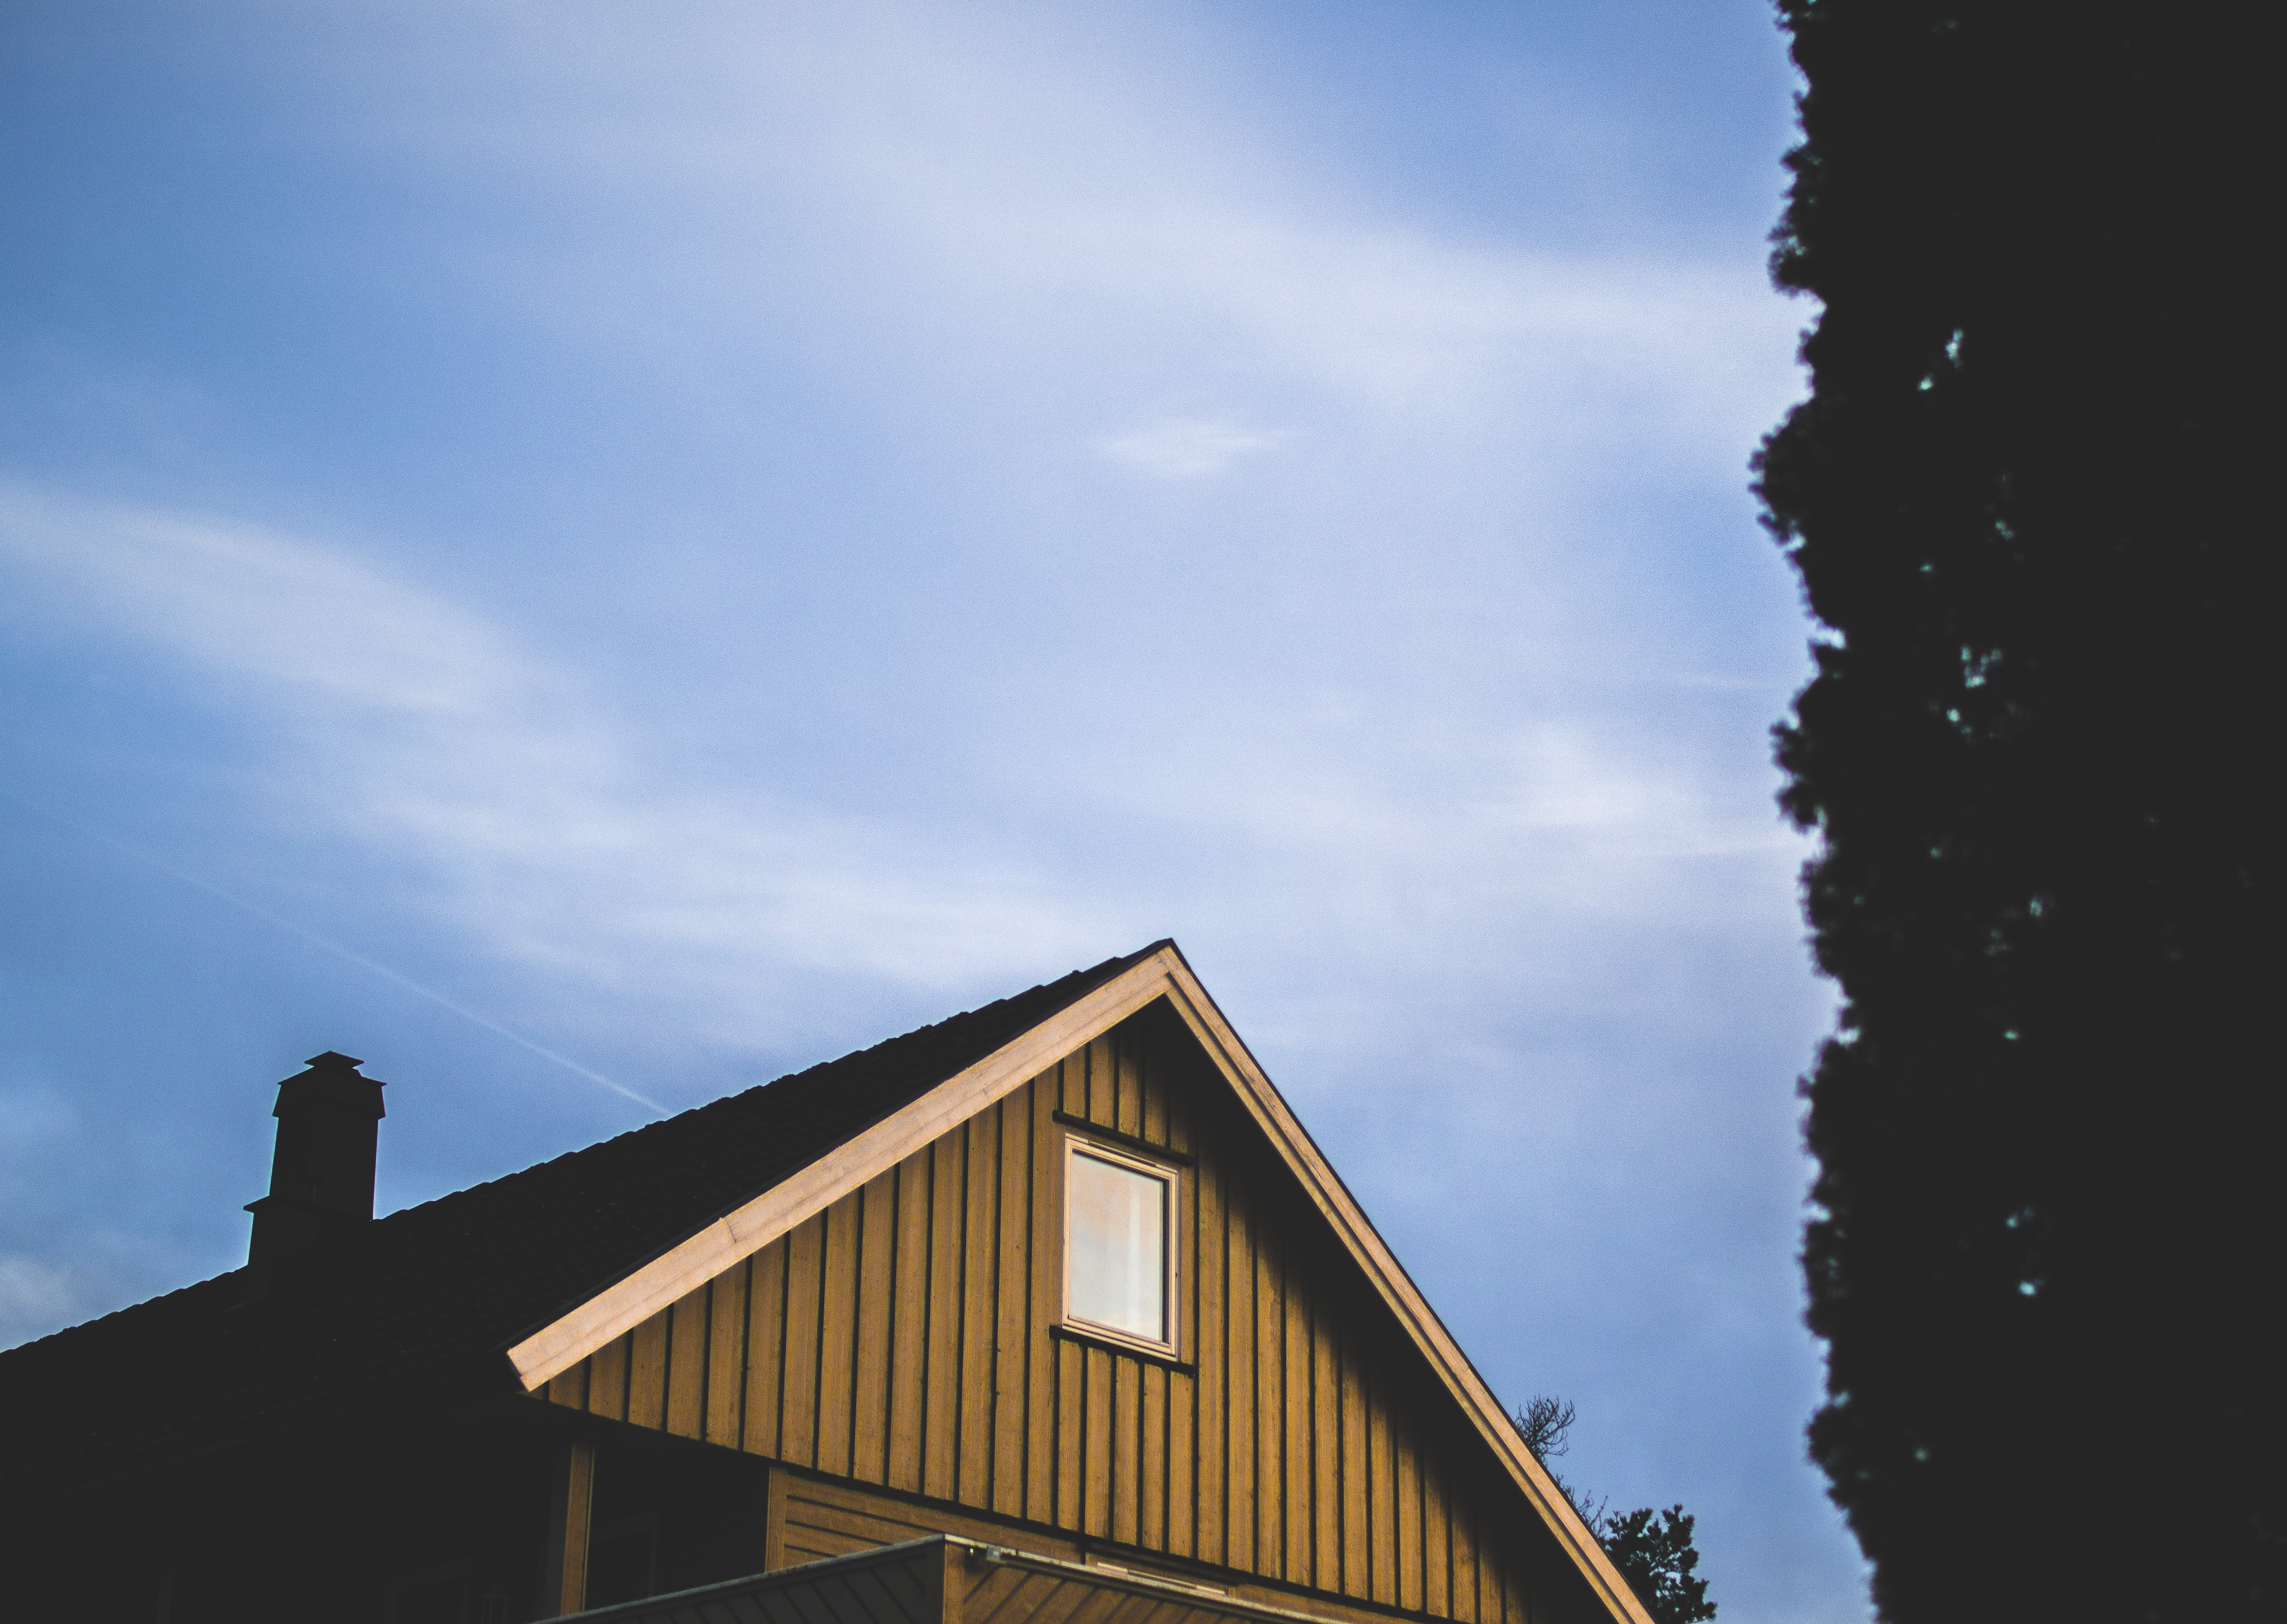 Brown Wooden House Under Blue Sky at Daytime